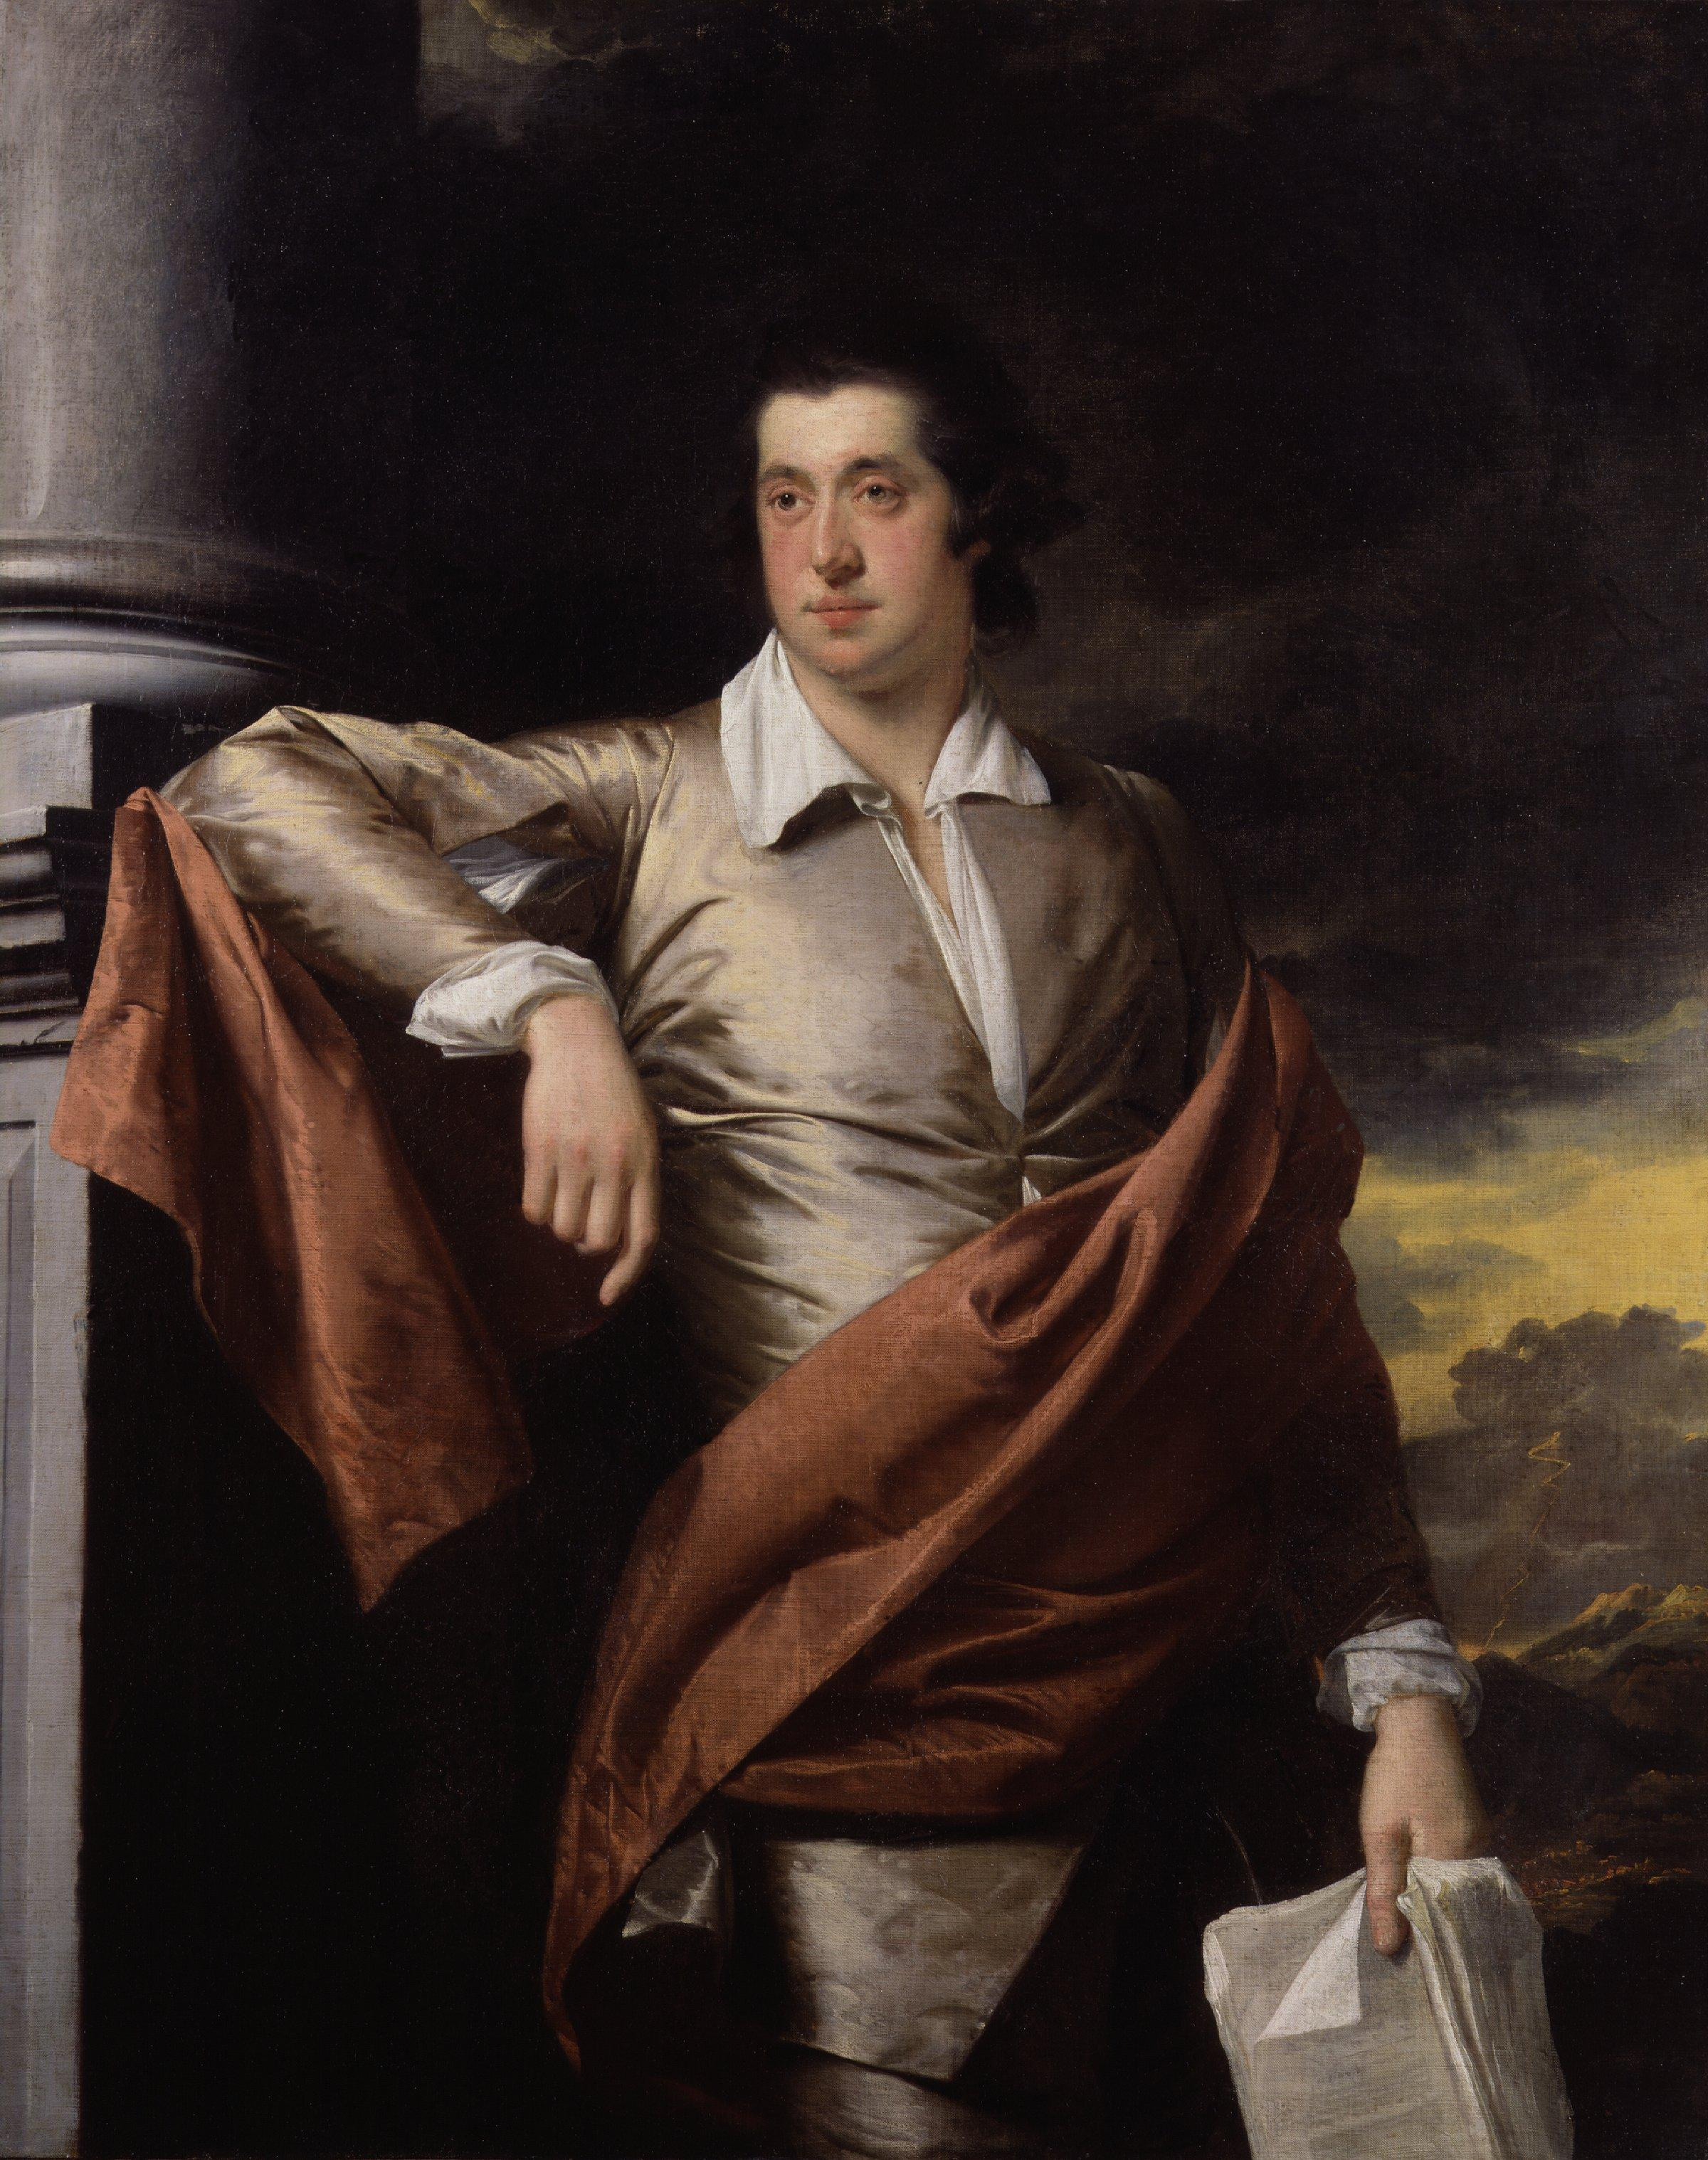 Image of Joseph Wright of Derby's portrait of Thomas Day, oil on canvas